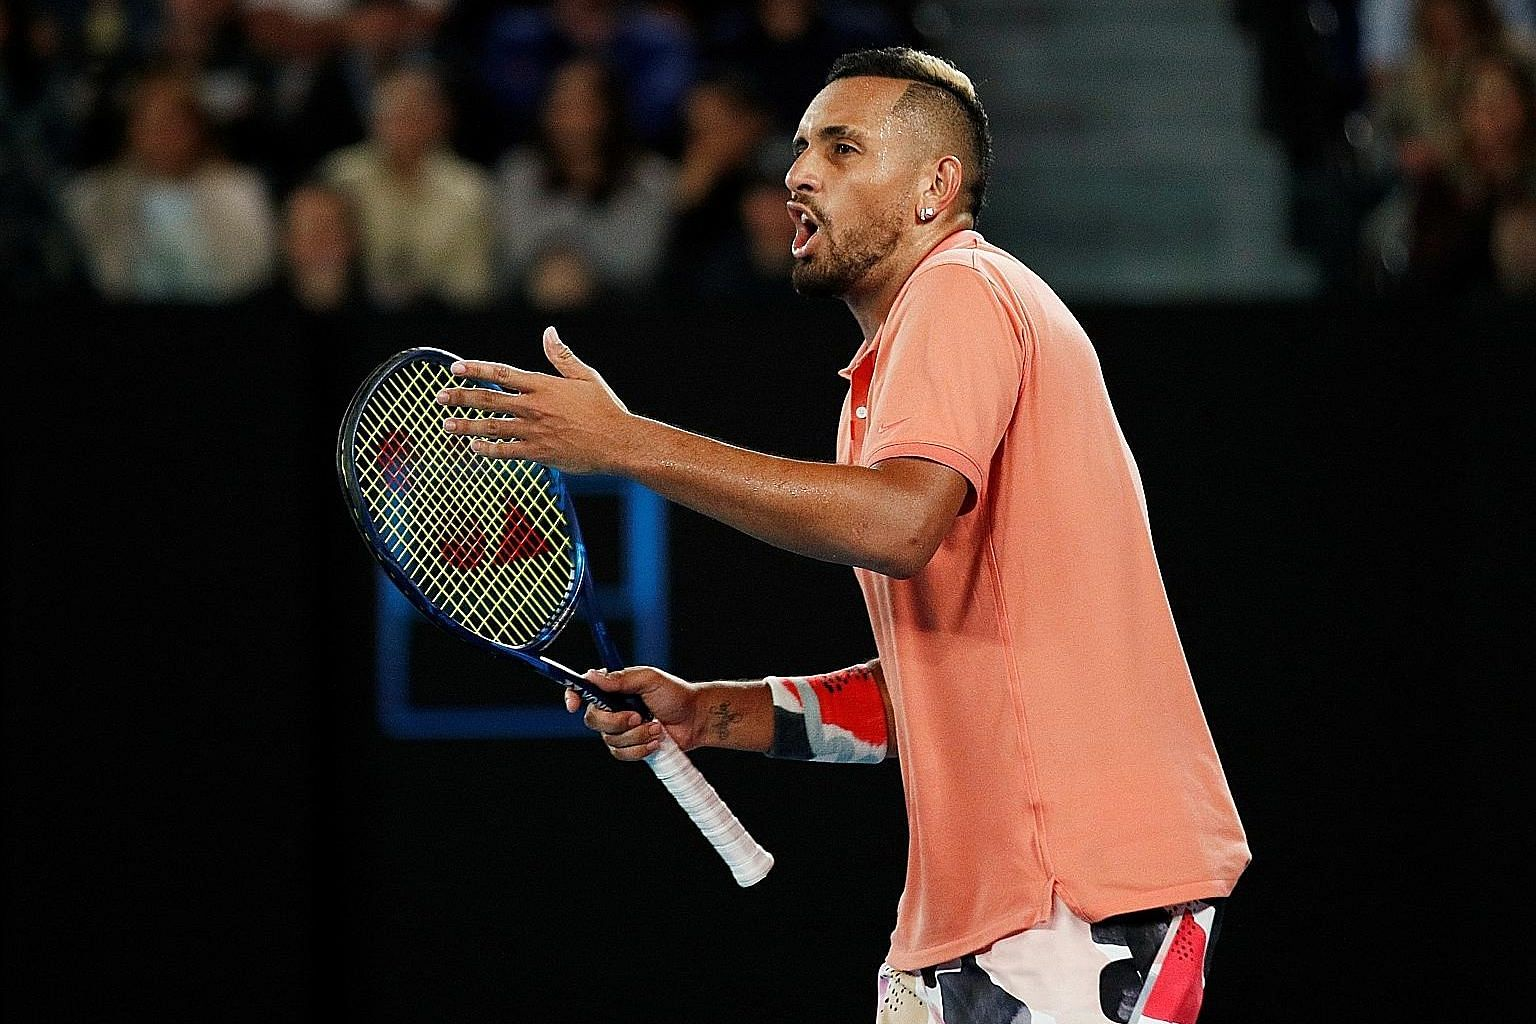 Nick Kyrgios reacting during his fourth-round loss to Rafael Nadal at the Australia Open in January. The Australian would play just one more match - at the Mexico Open in Acapulco in February - before the coronavirus pandemic halted the ATP season.